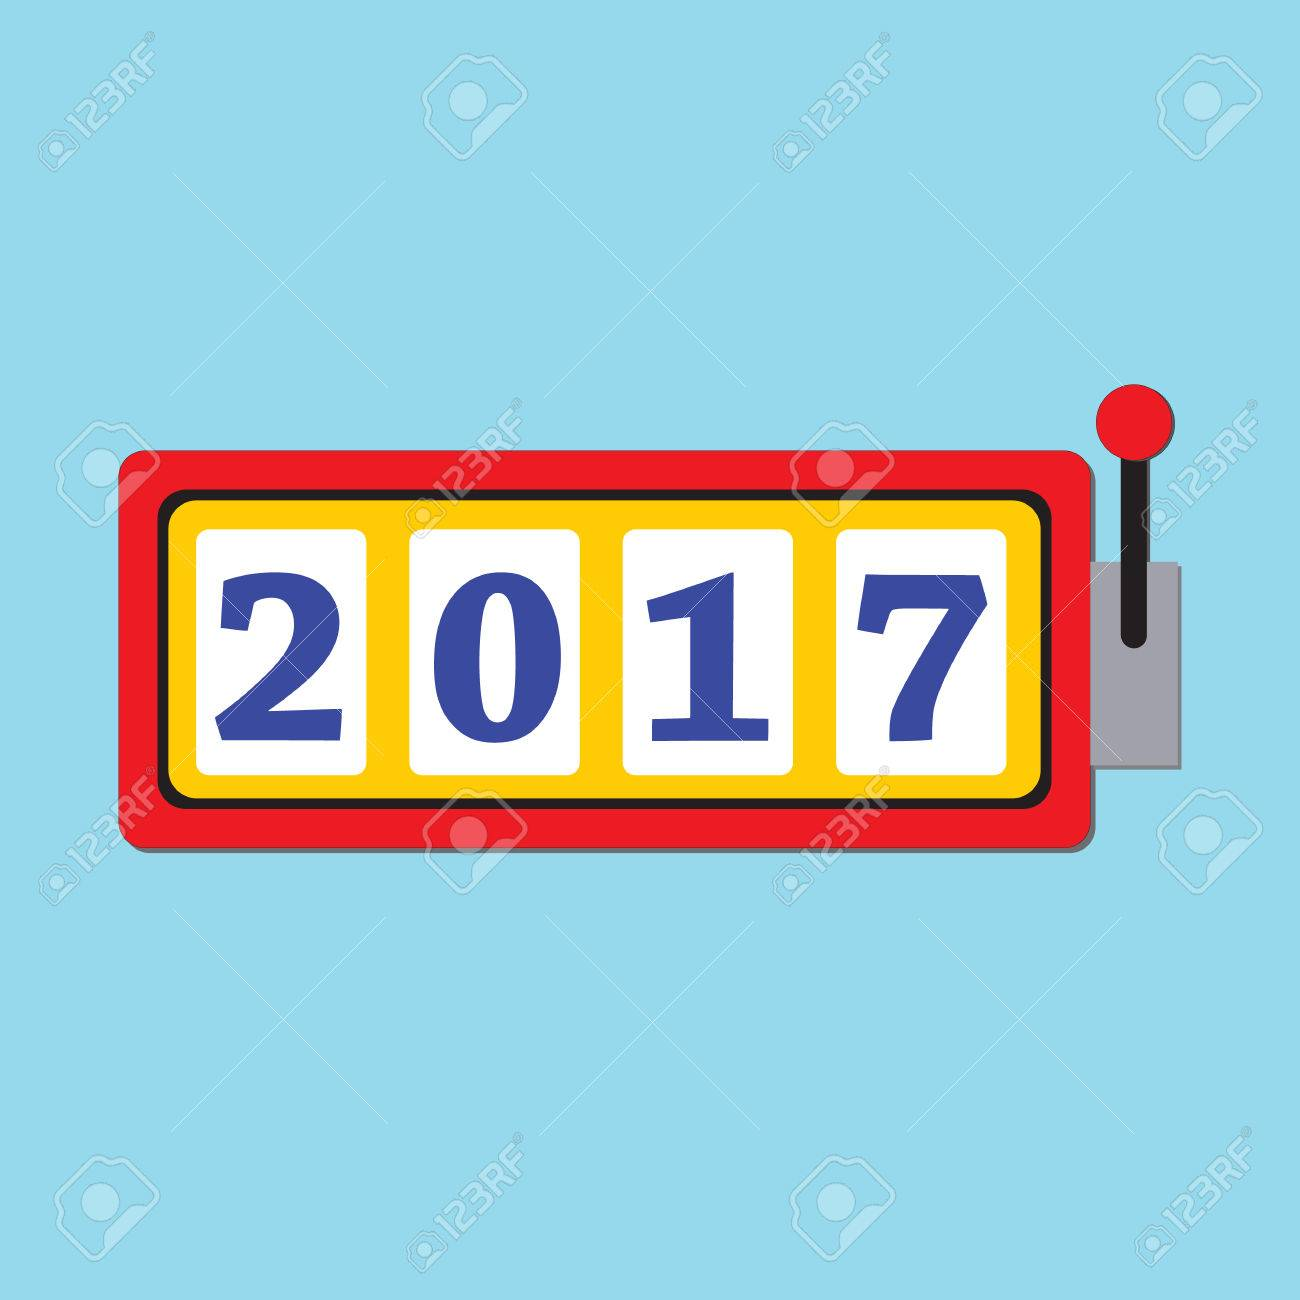 Happy New Year 2017 Greeting Card With Slot Machine And Lucky